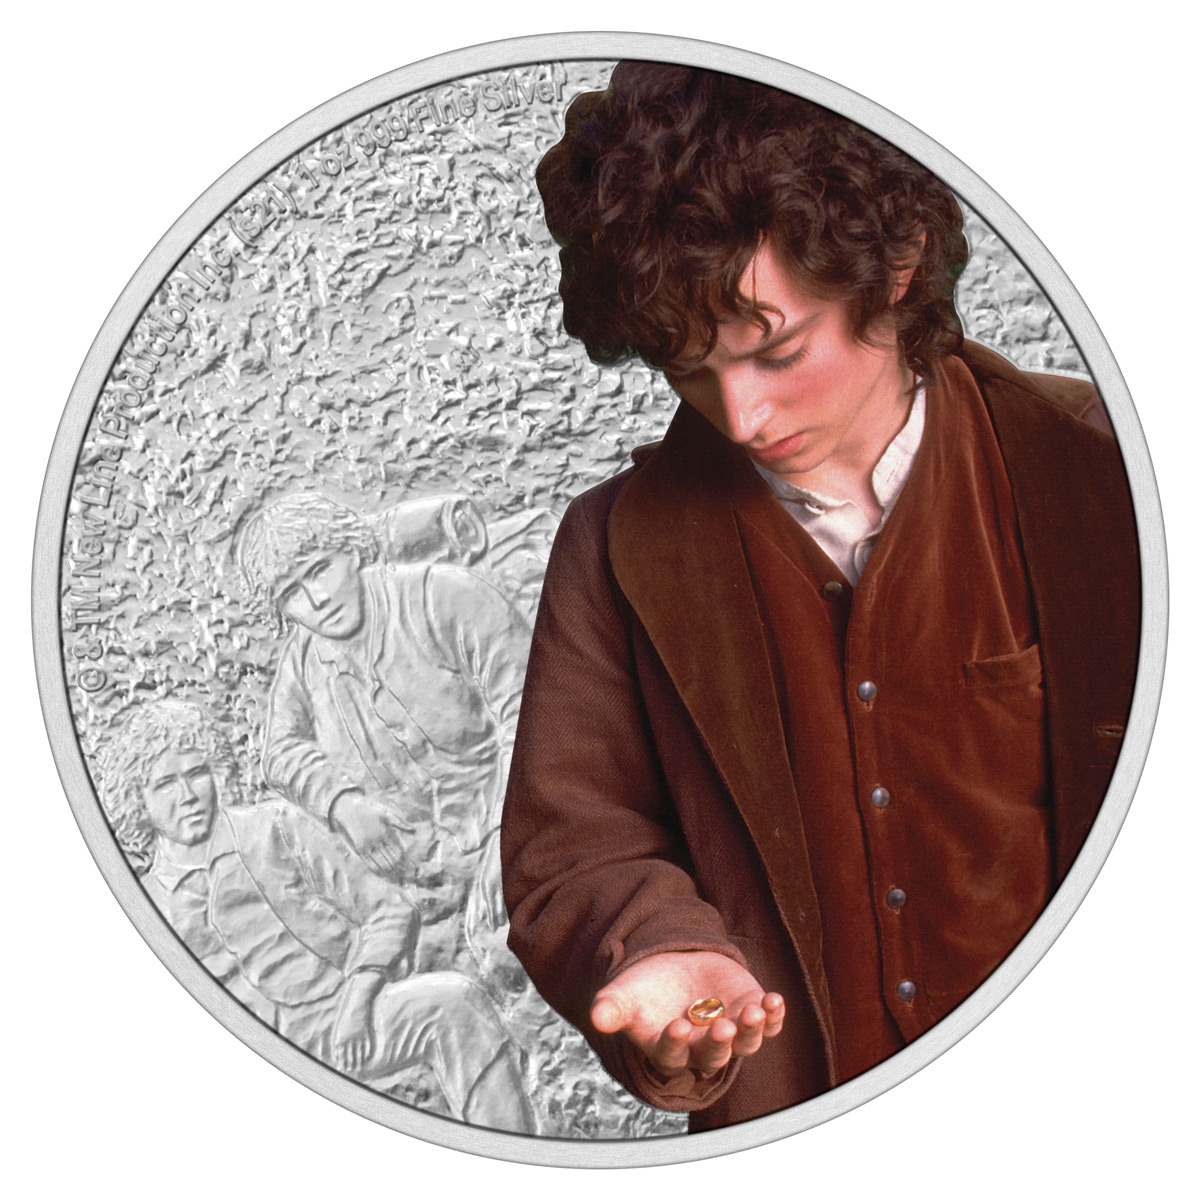 2021 Niue Lord of the Rings - Frodo Baggins 1 oz Silver Colorized Proof $2 Coin GEM Proof OGP